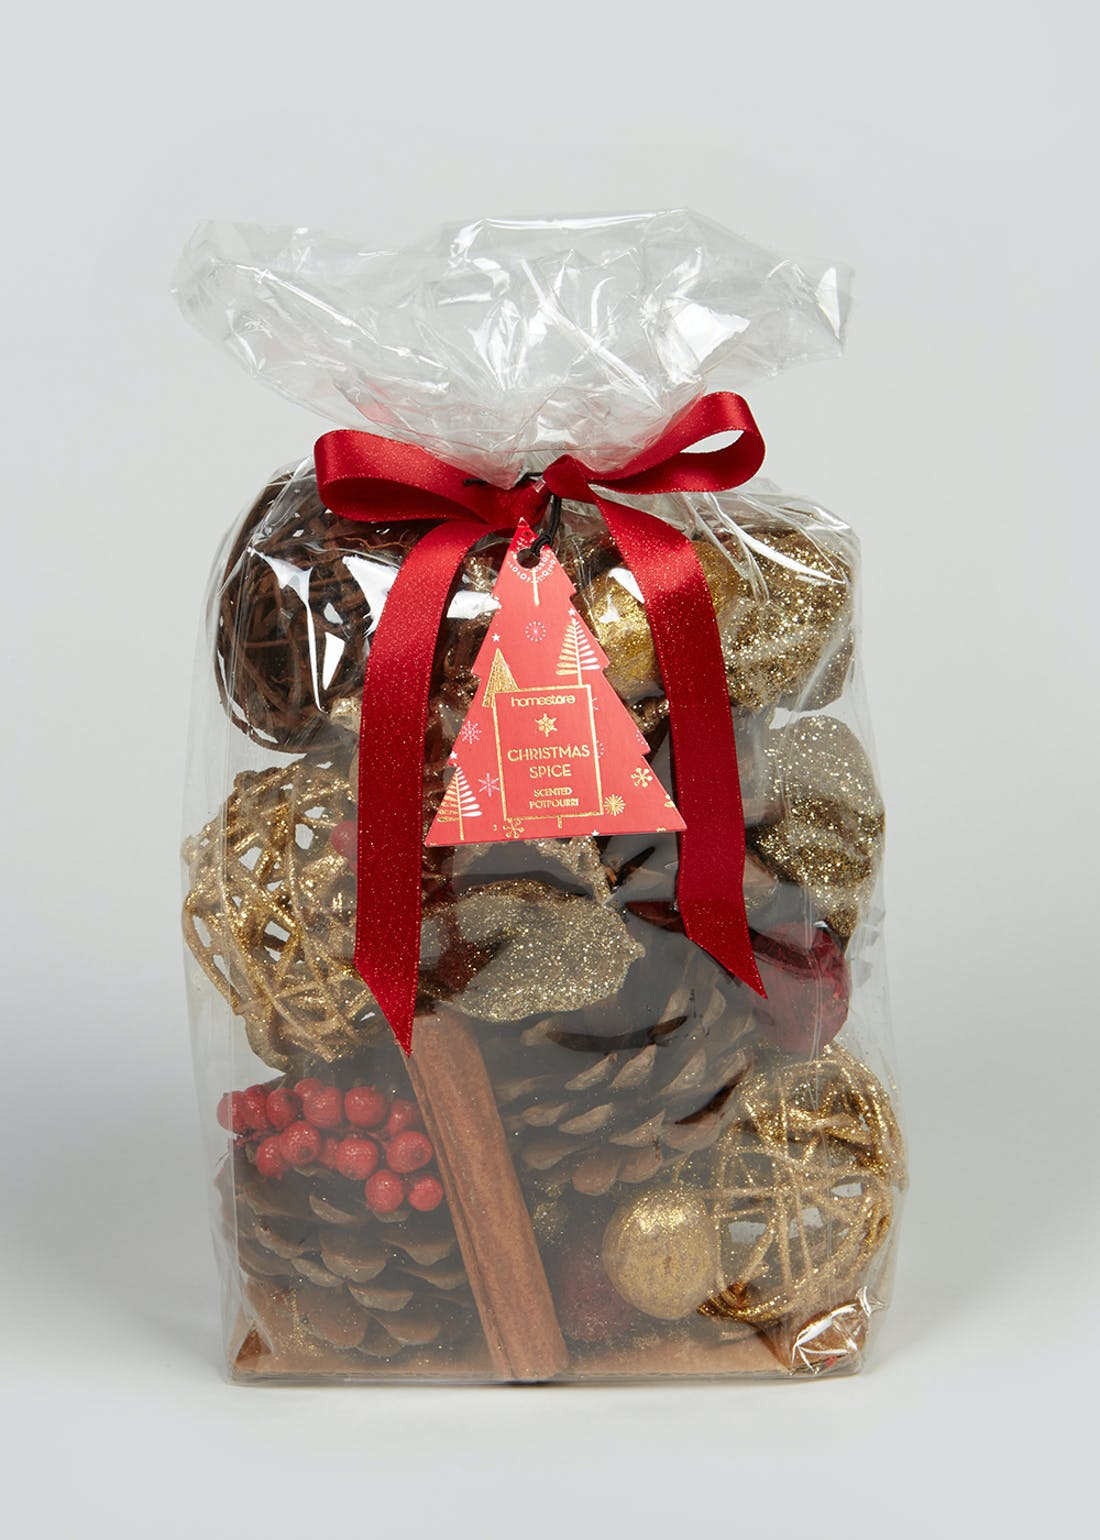 Christmas Spice Pot Pourri